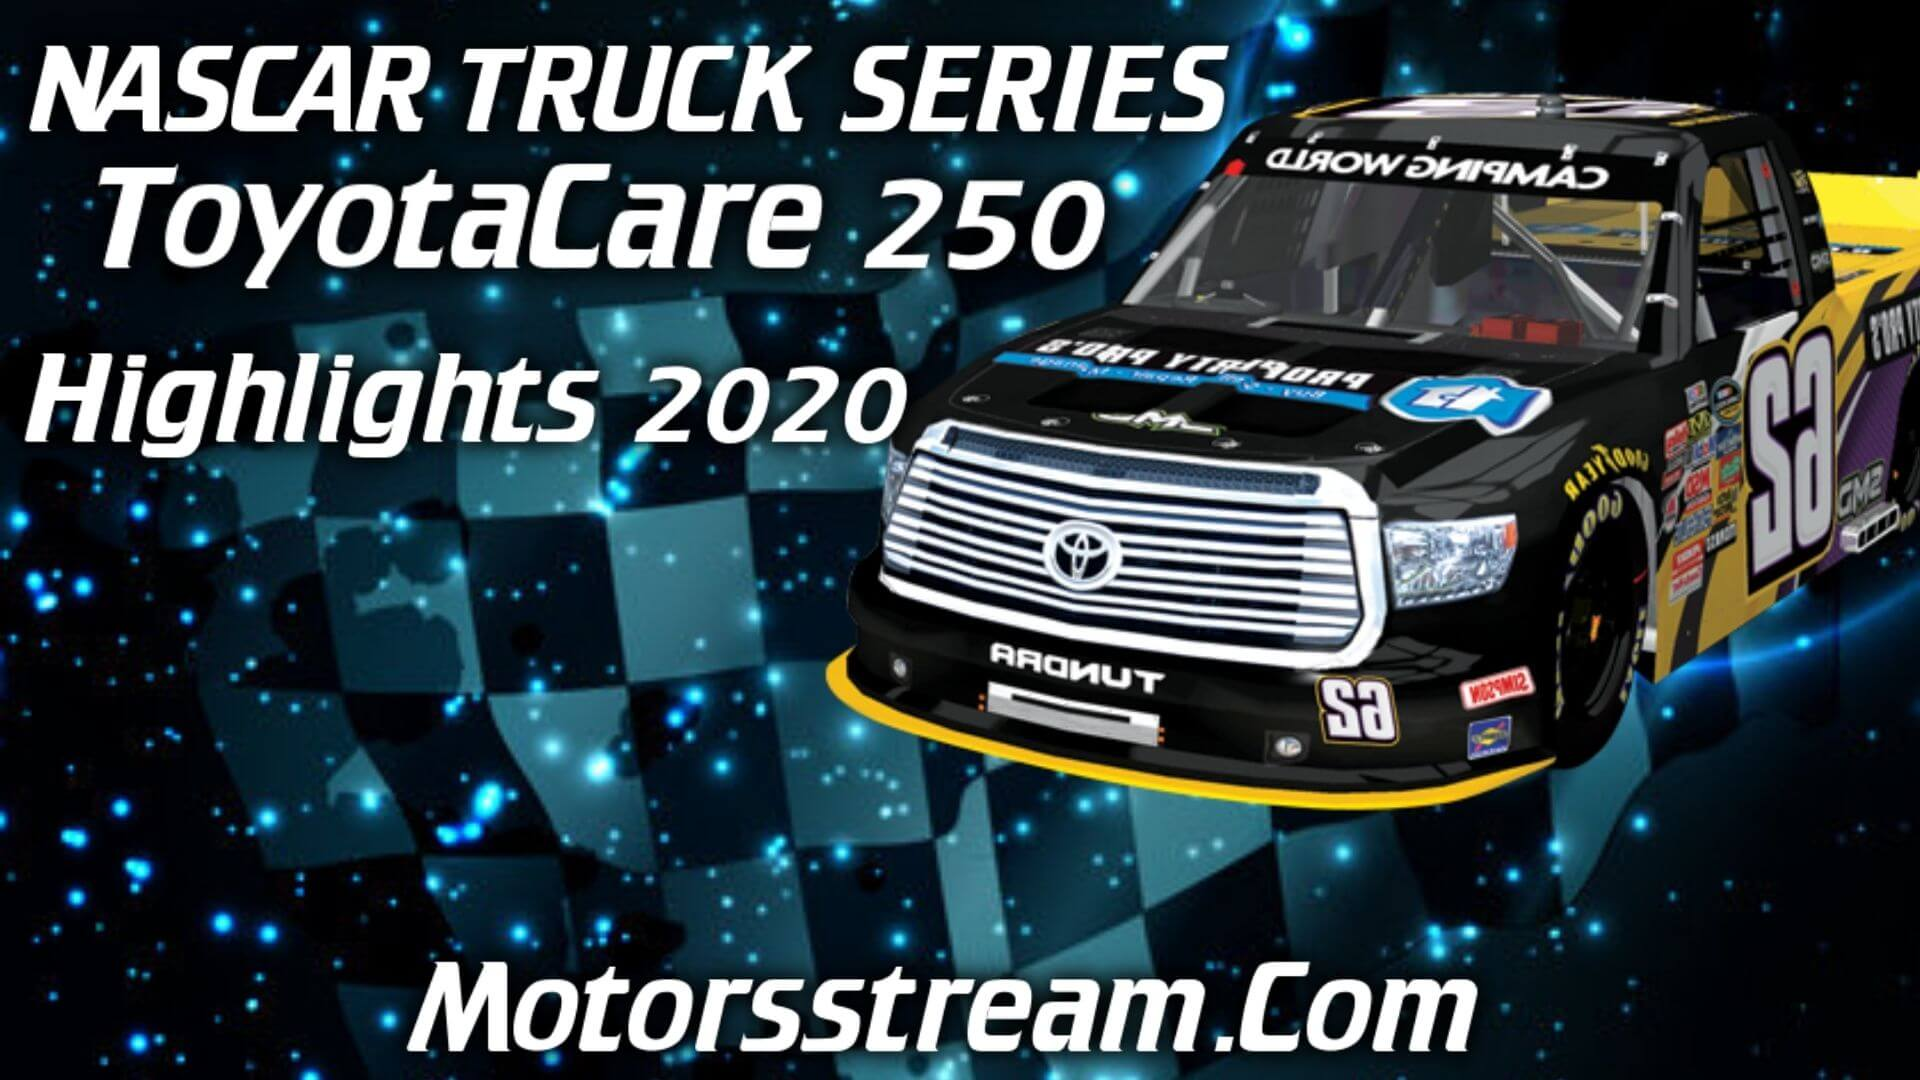 ToyotaCare 250 Highlights 2020 NASCAR Truck Series